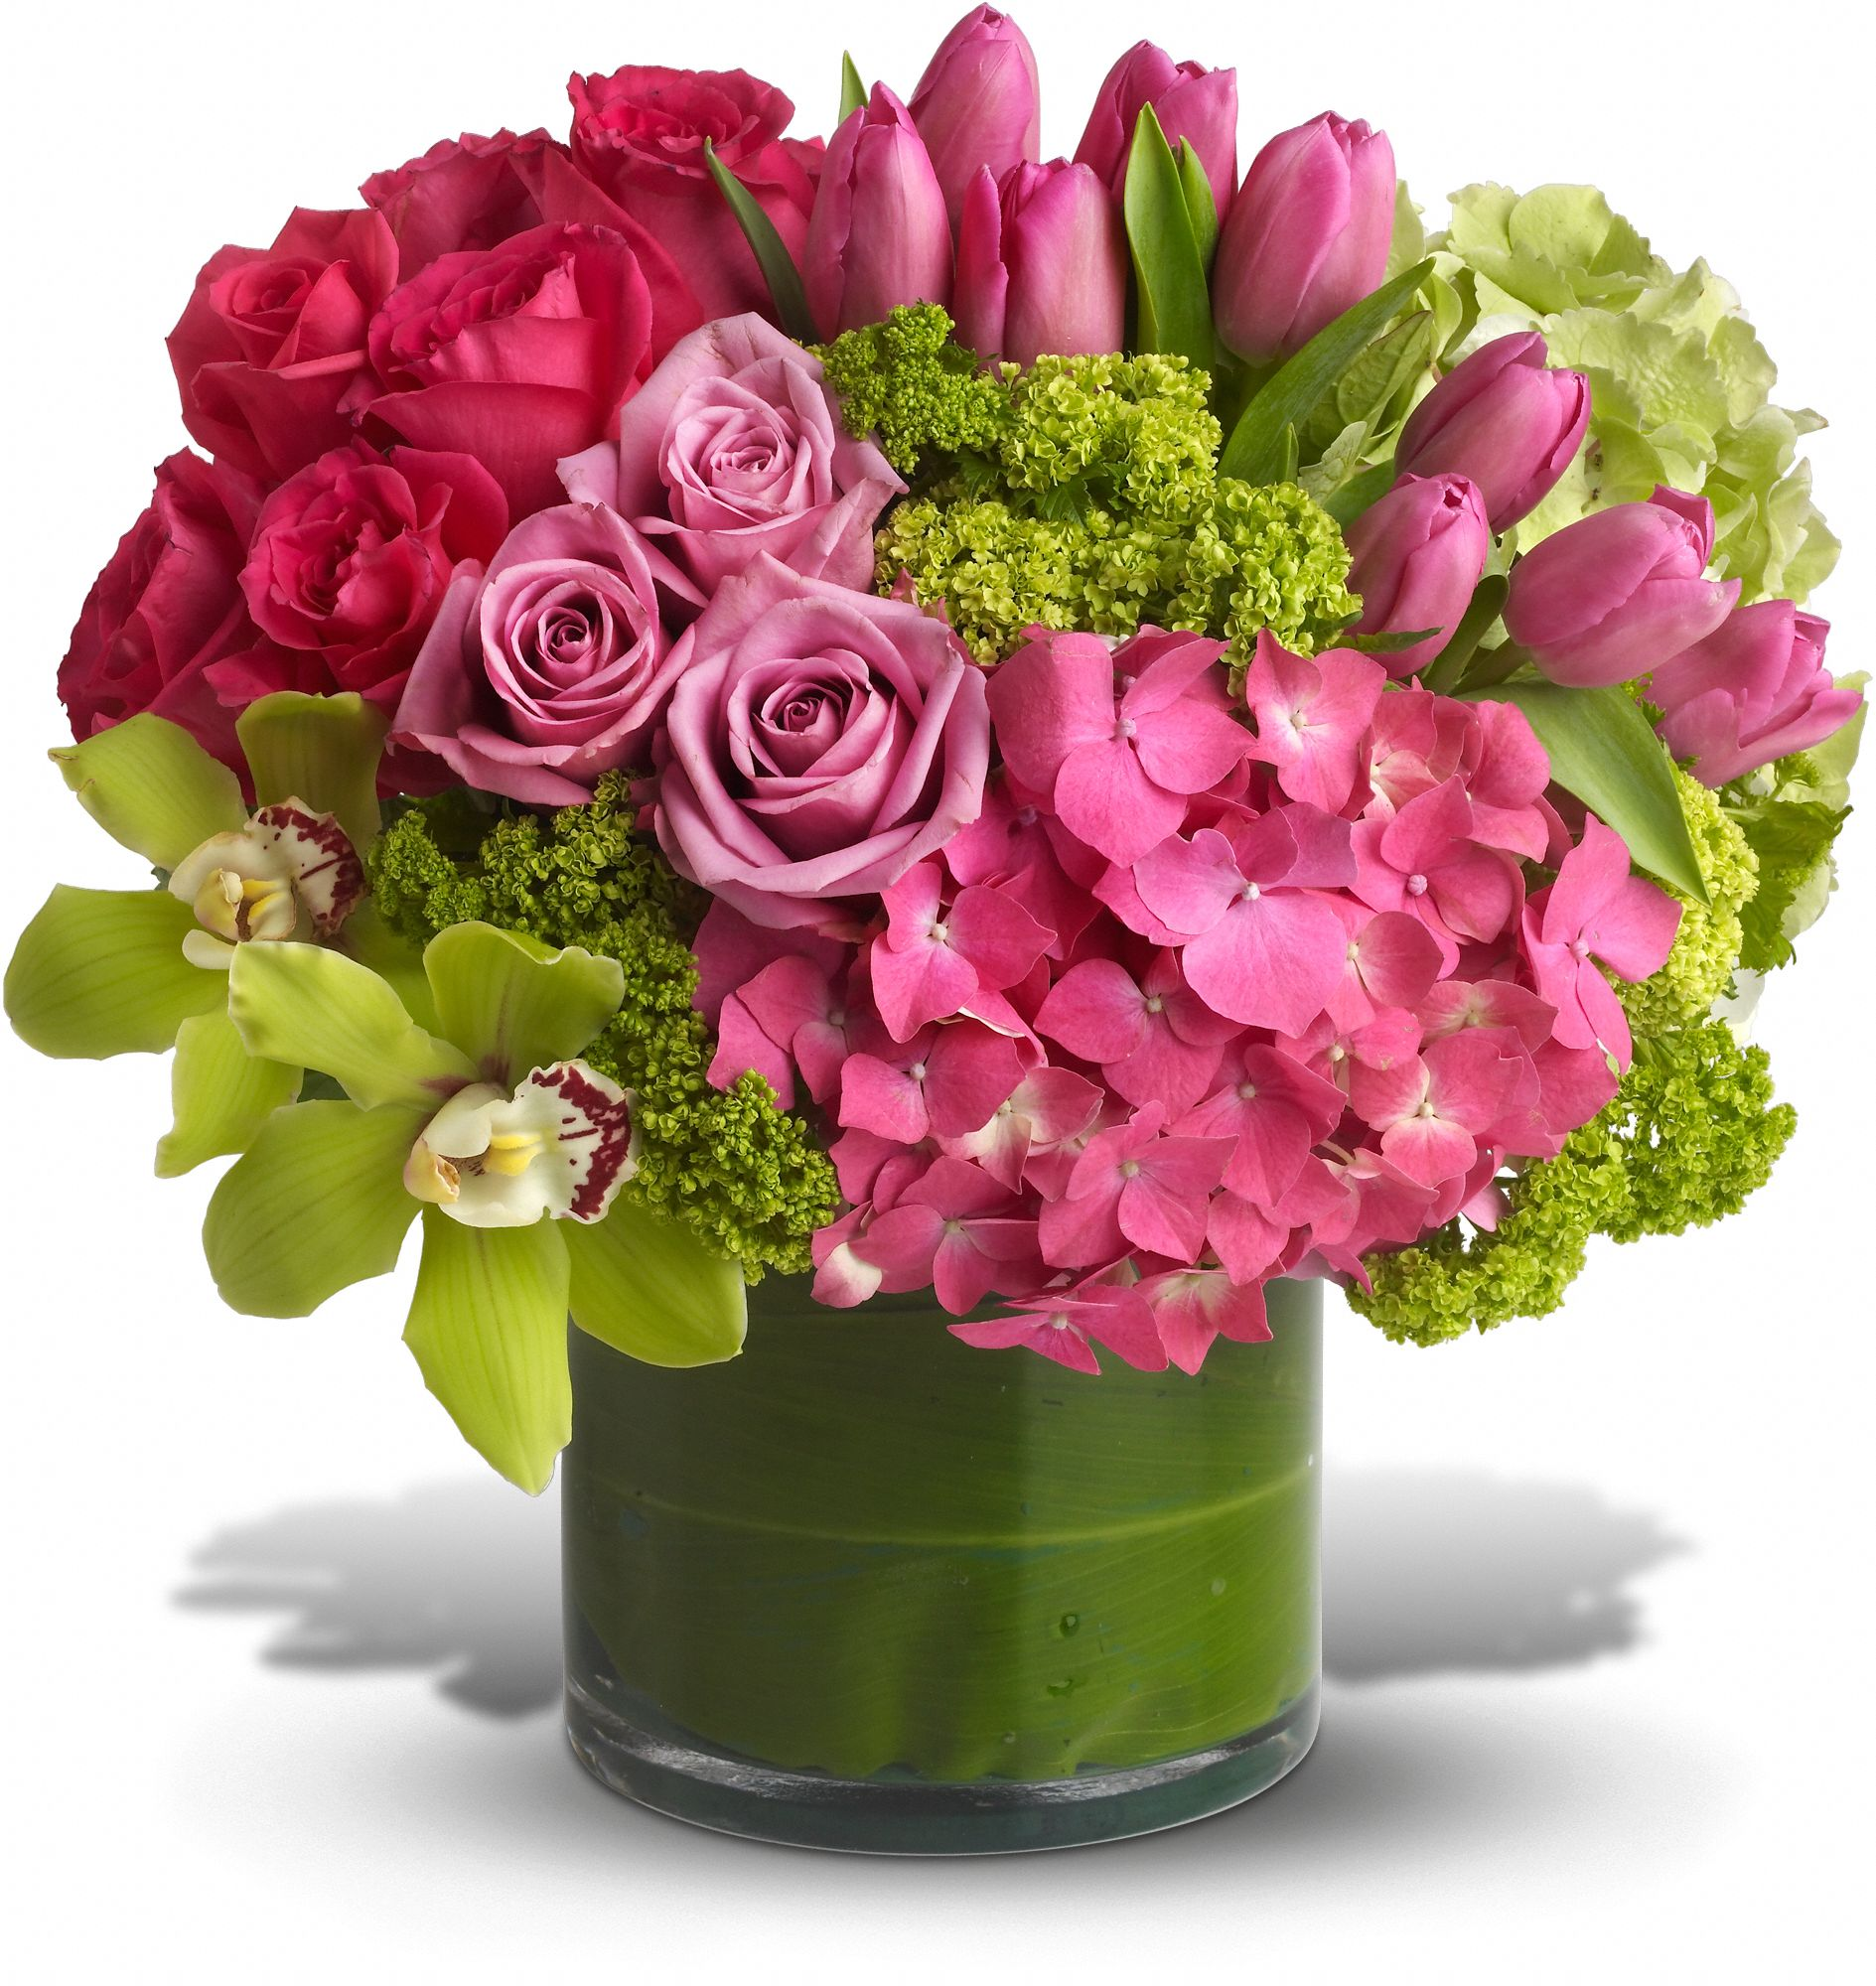 Flowers For Delivery Pinehill Flowers Shop Nj Same Day Flower